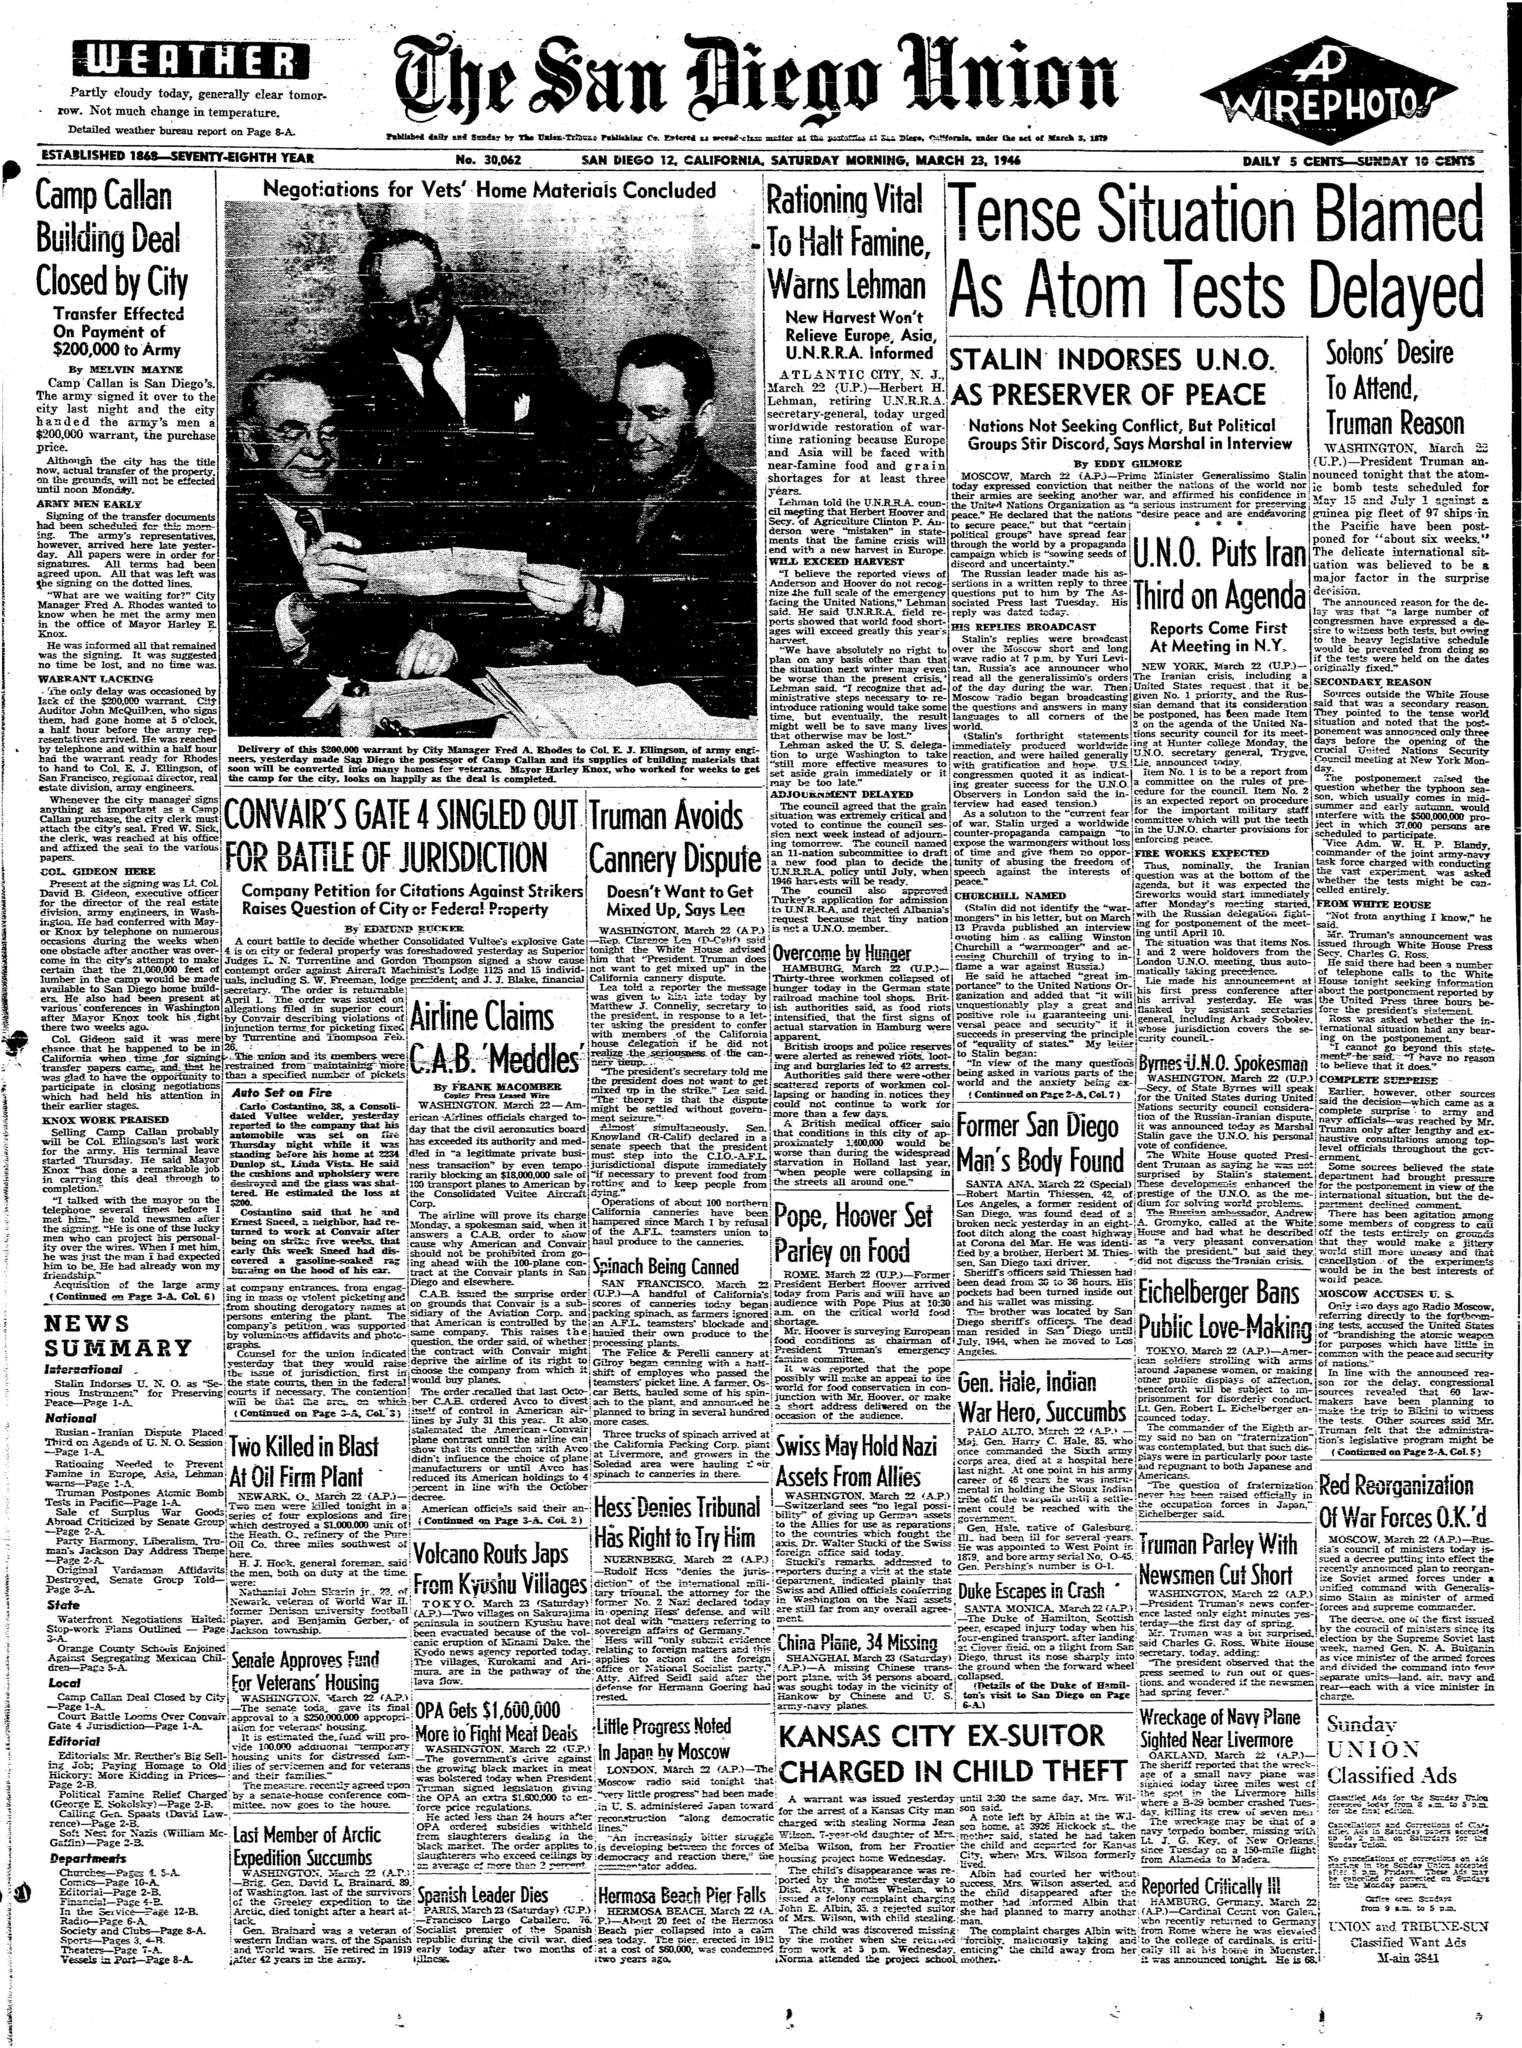 March 23, 1946